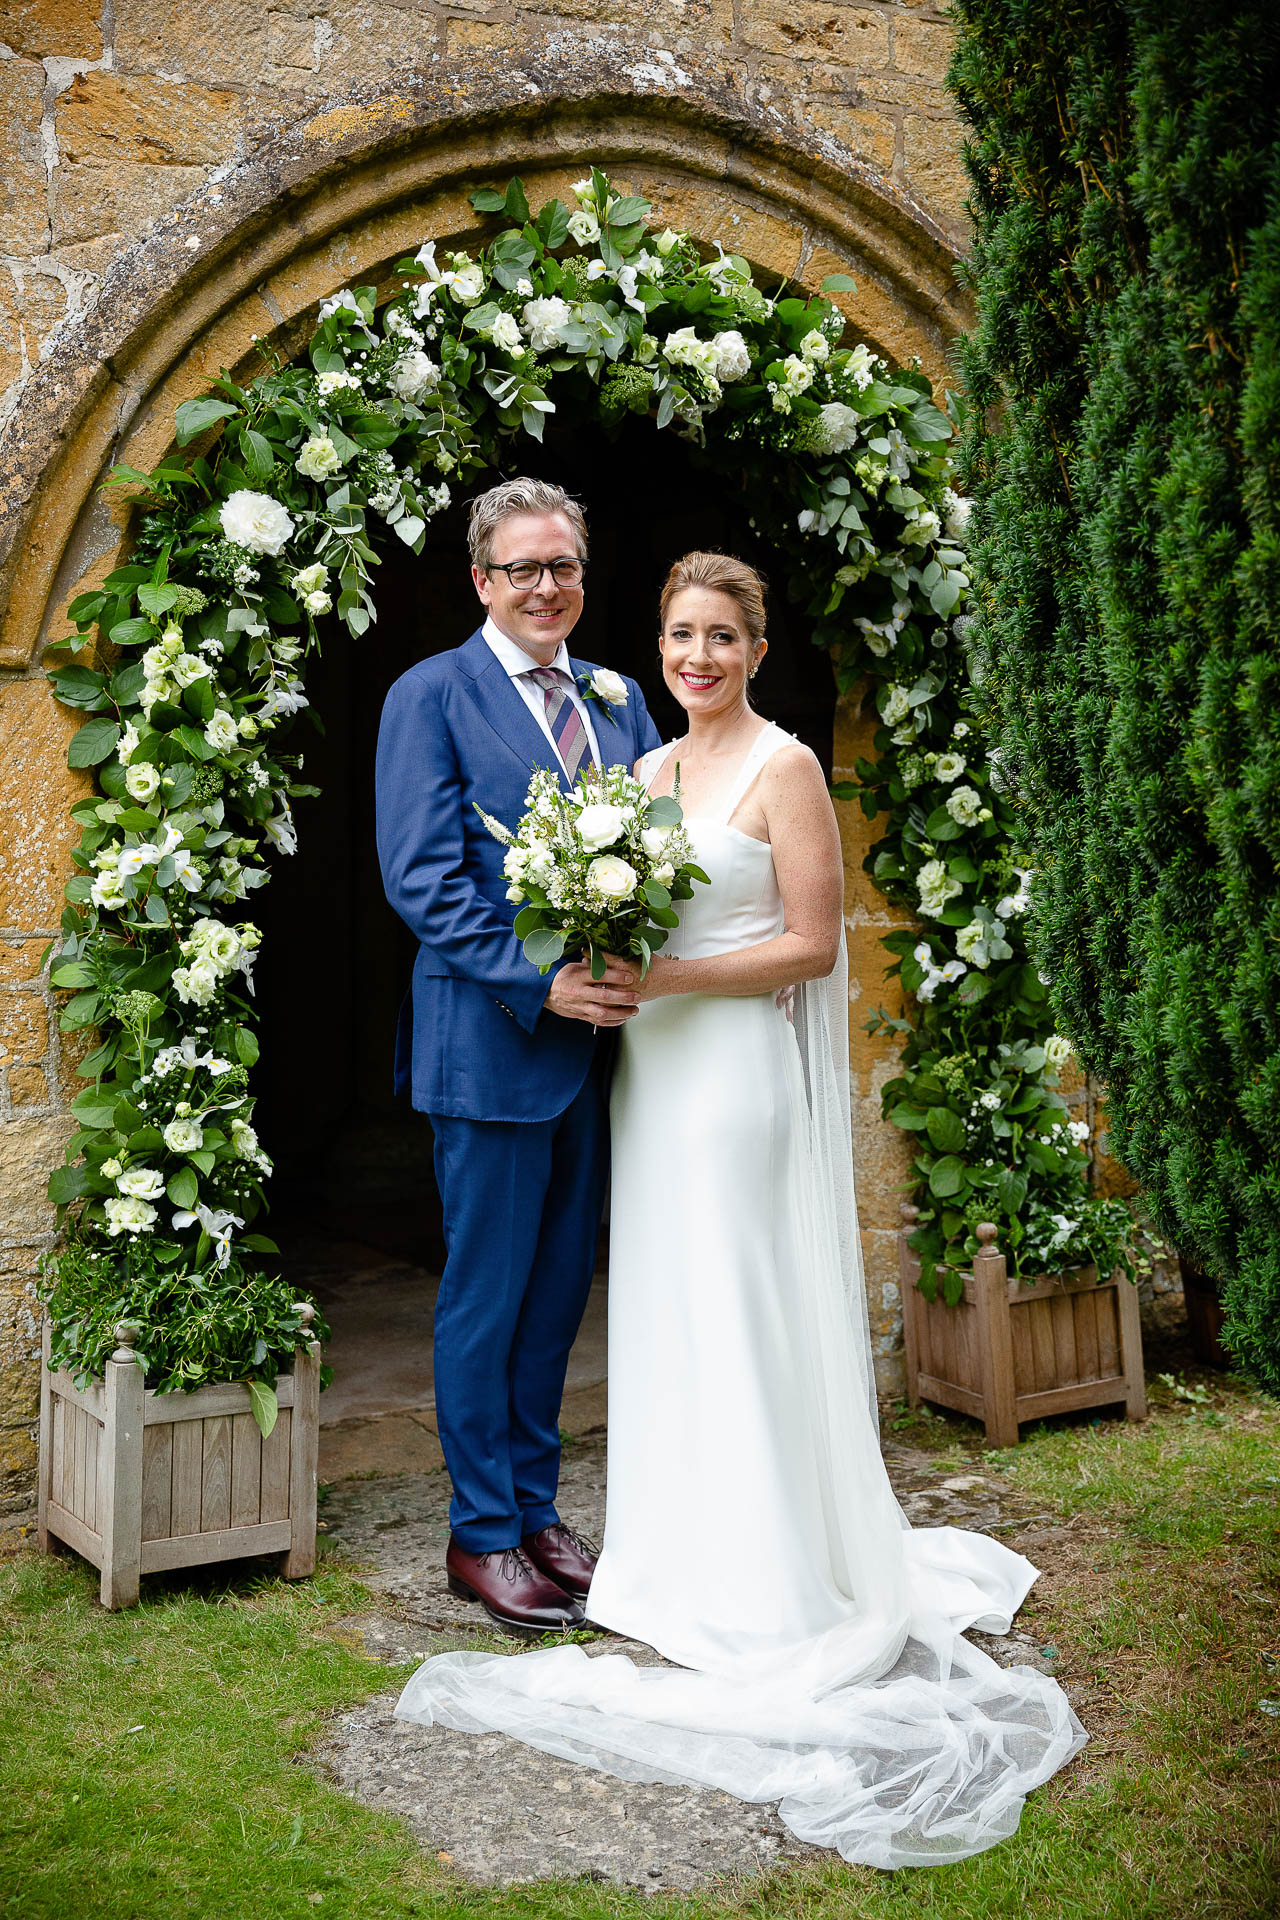 portrait of bride and groom in front of arched chuch doorway with flowers